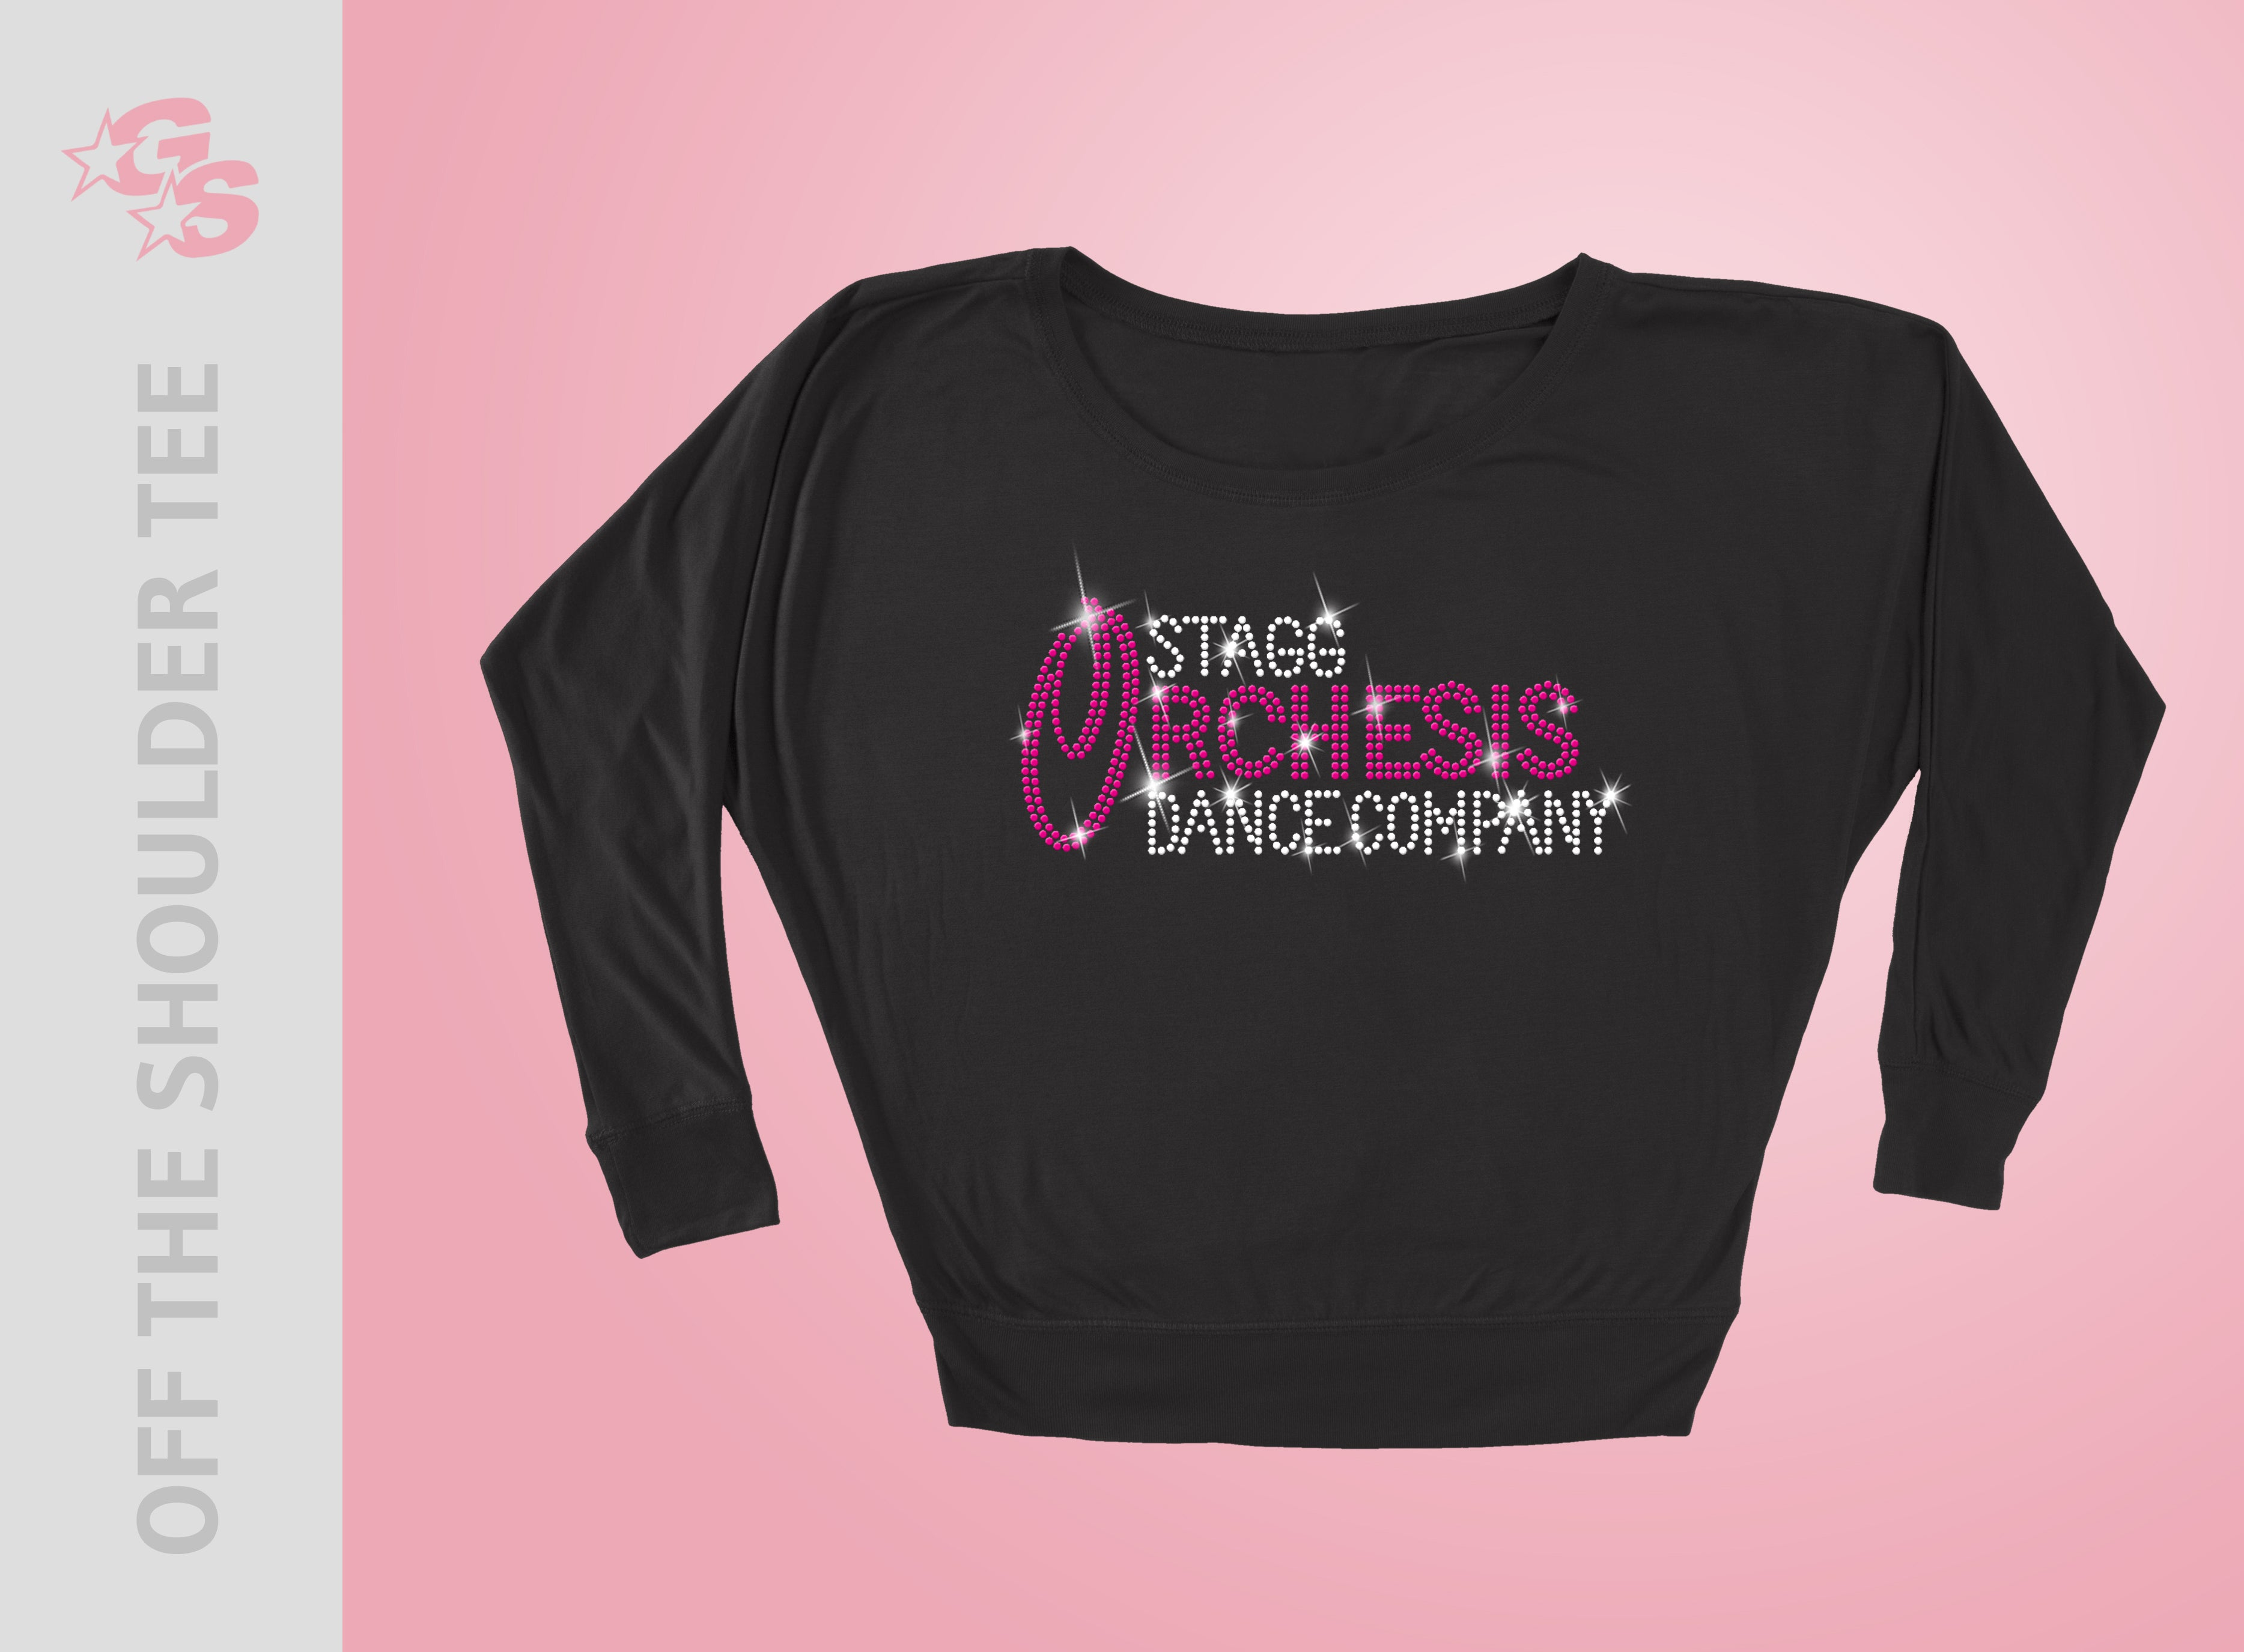 Stagg Orchesis Dance Company Off the Shoulder Tee - Women's - Bling Logo